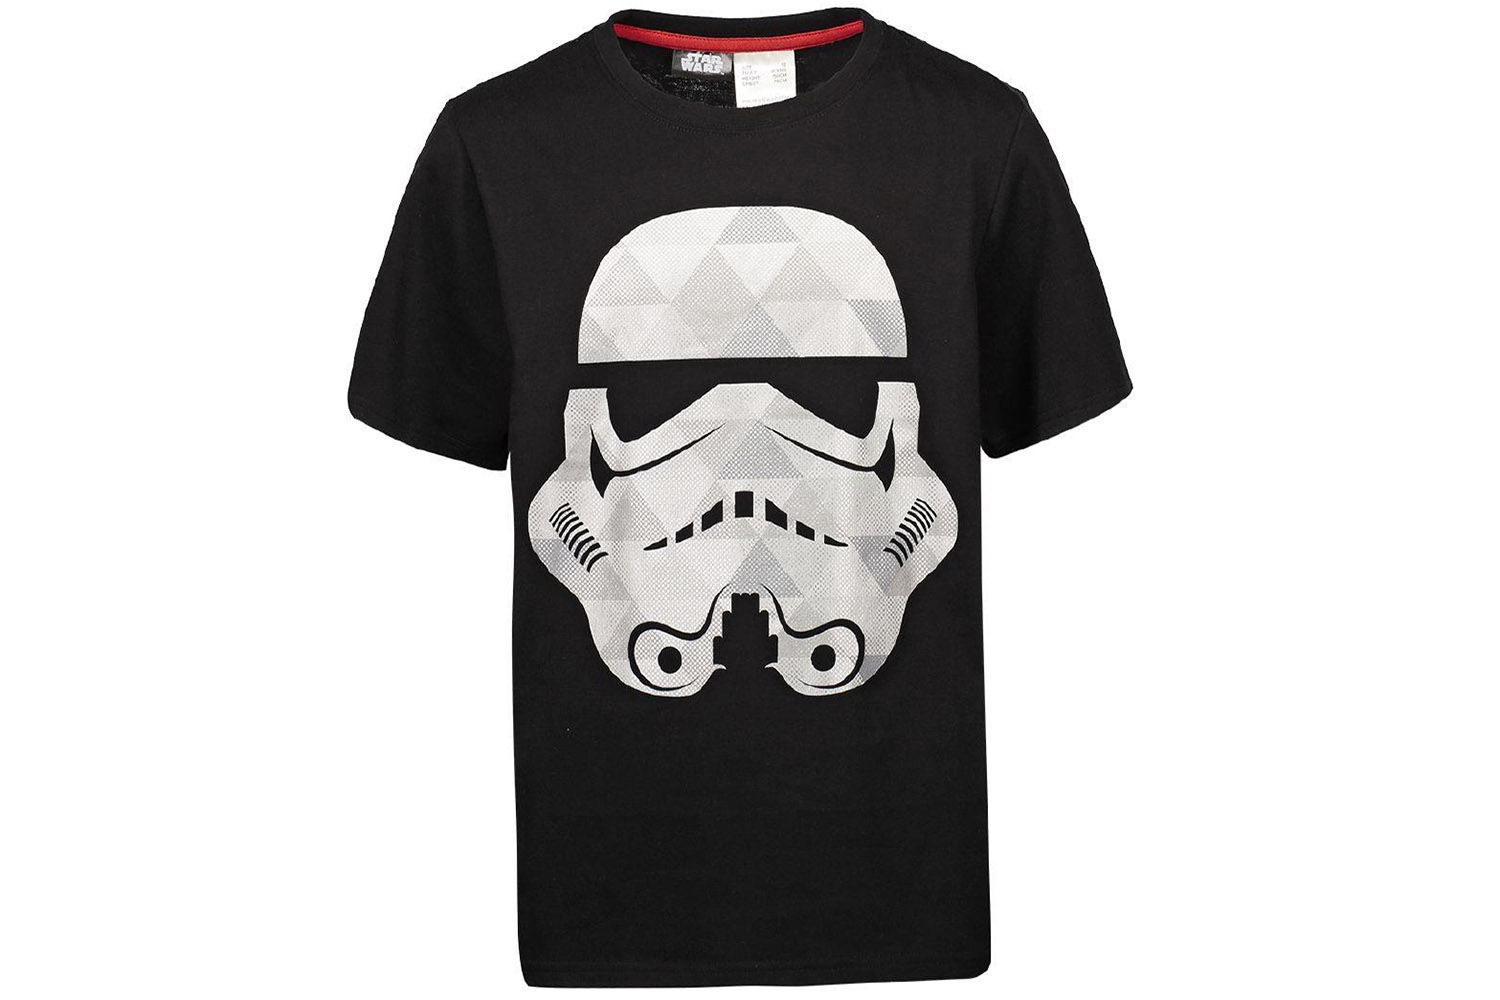 New Star Wars T Shirt Designs Swnz Star Wars New Zealand